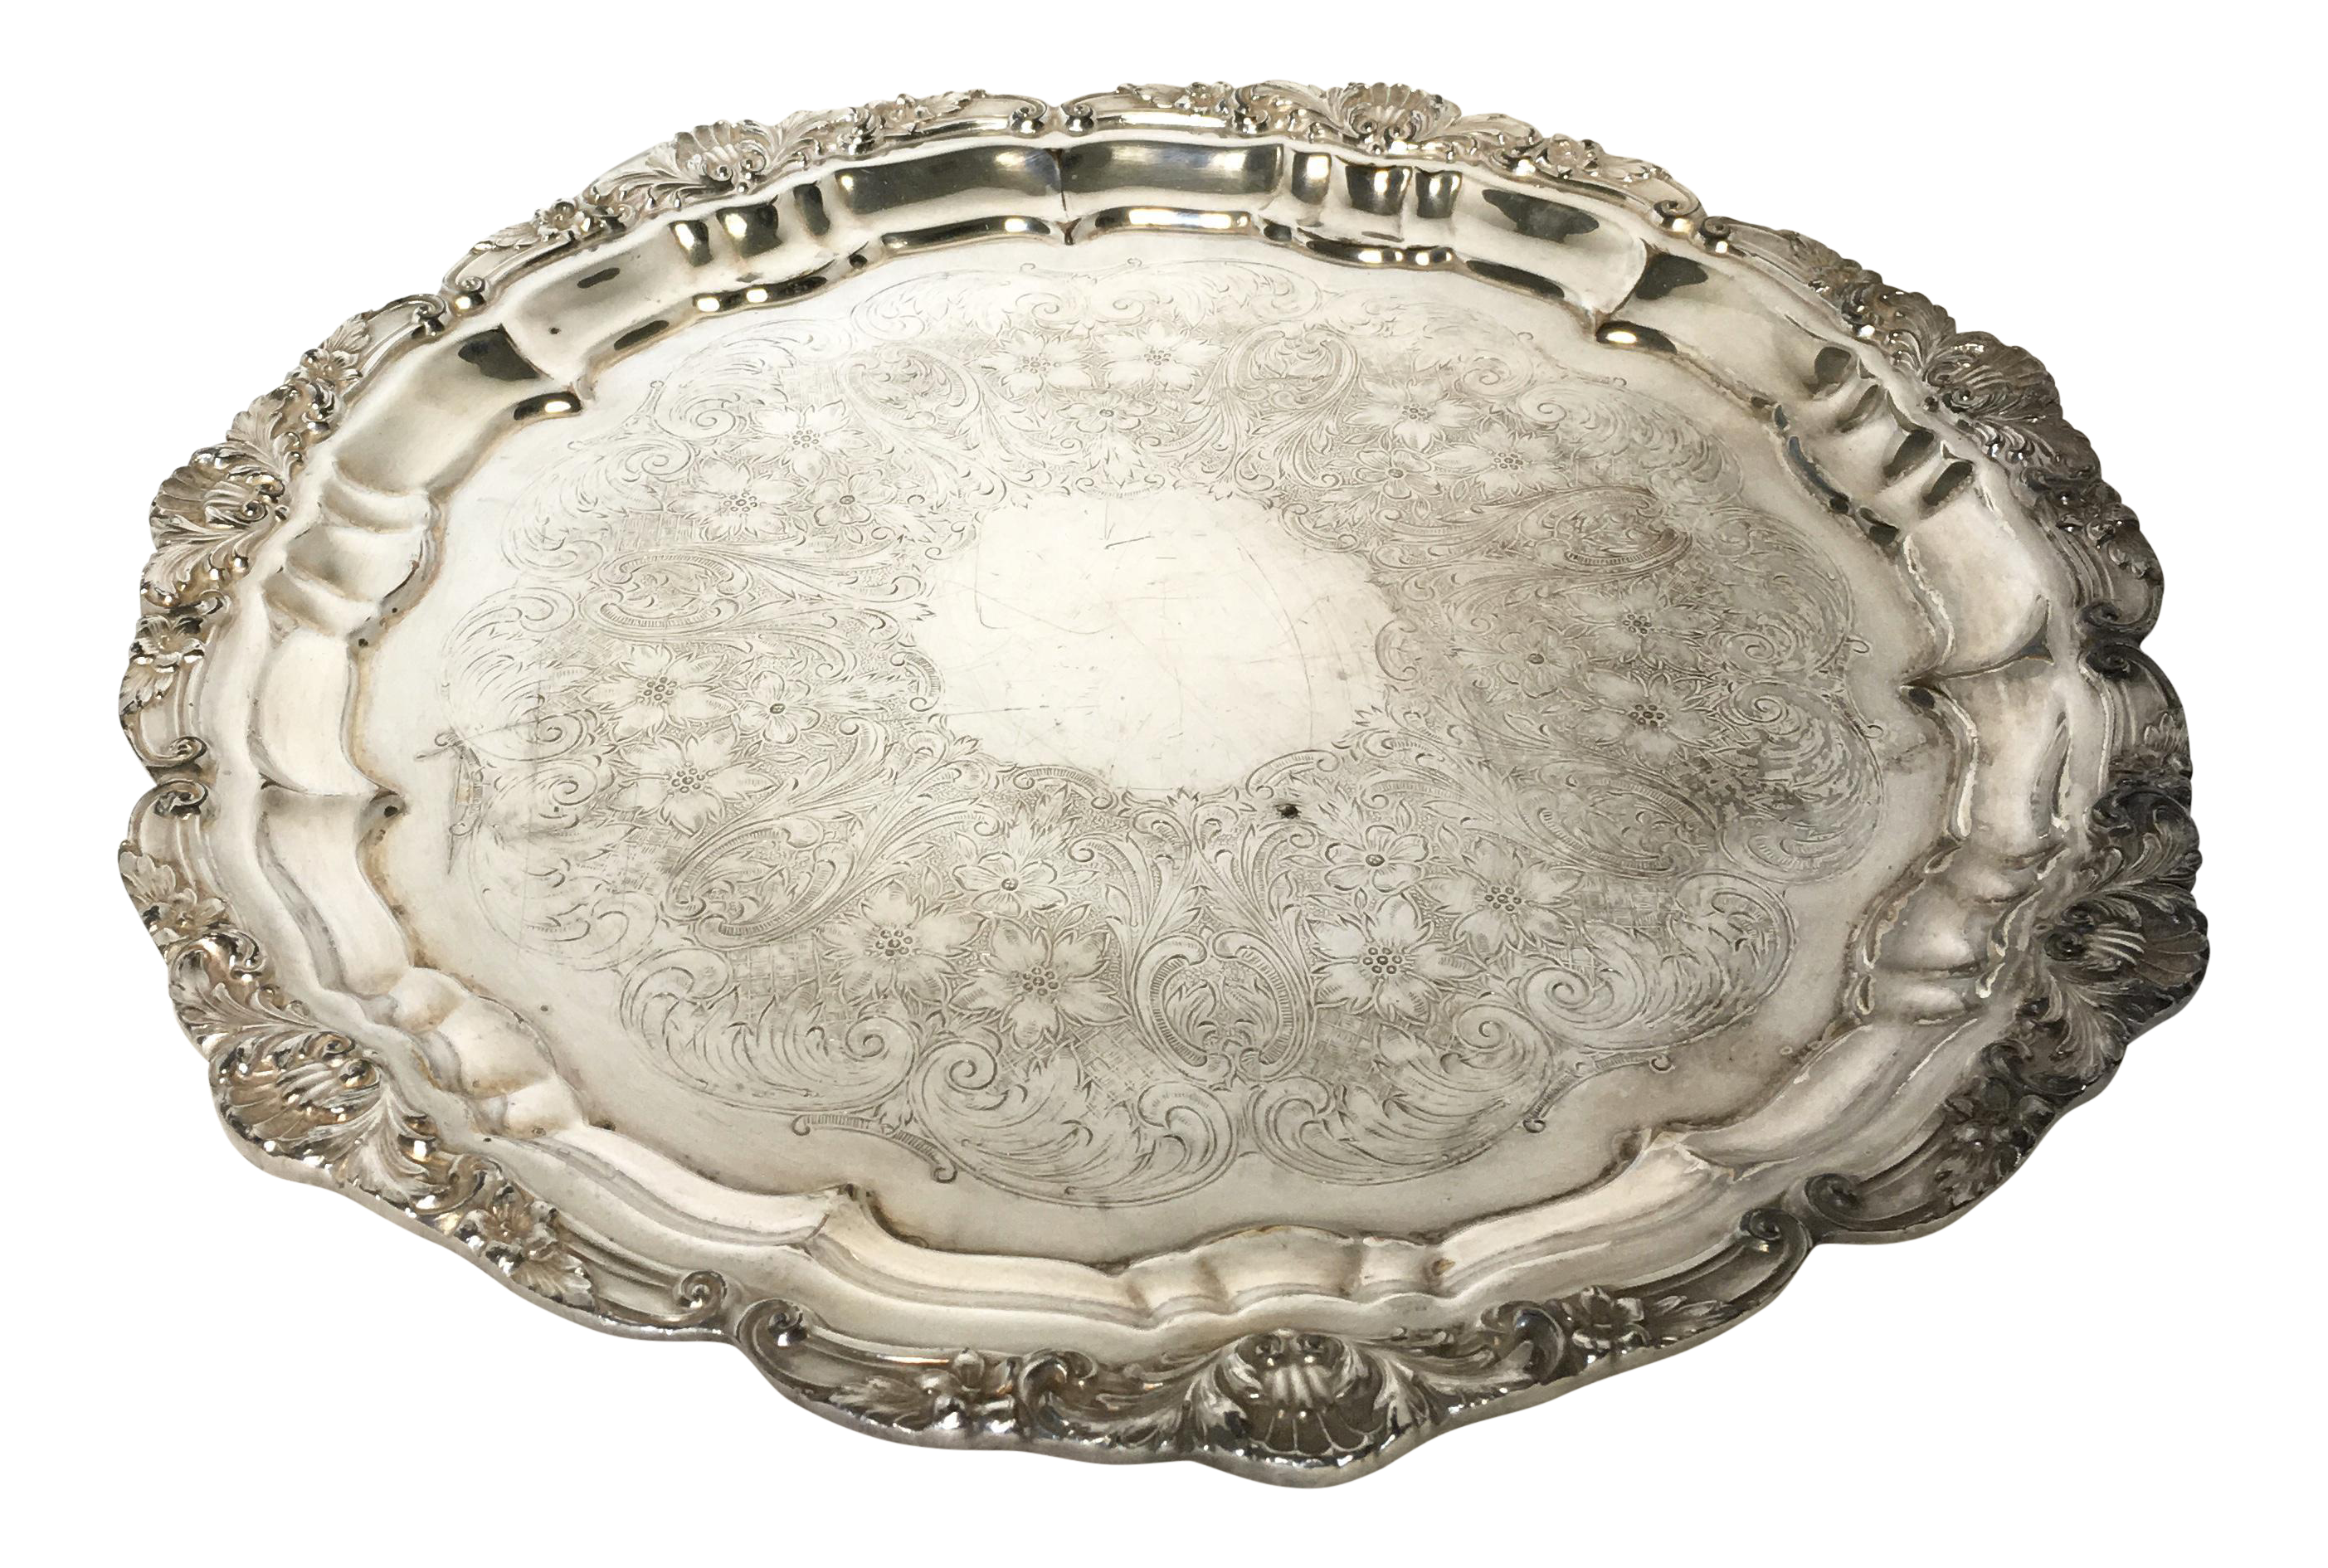 Poole Vintage Silver Plated Tray  sc 1 st  Chairish & Poole Vintage Silver Plated Tray   Chairish